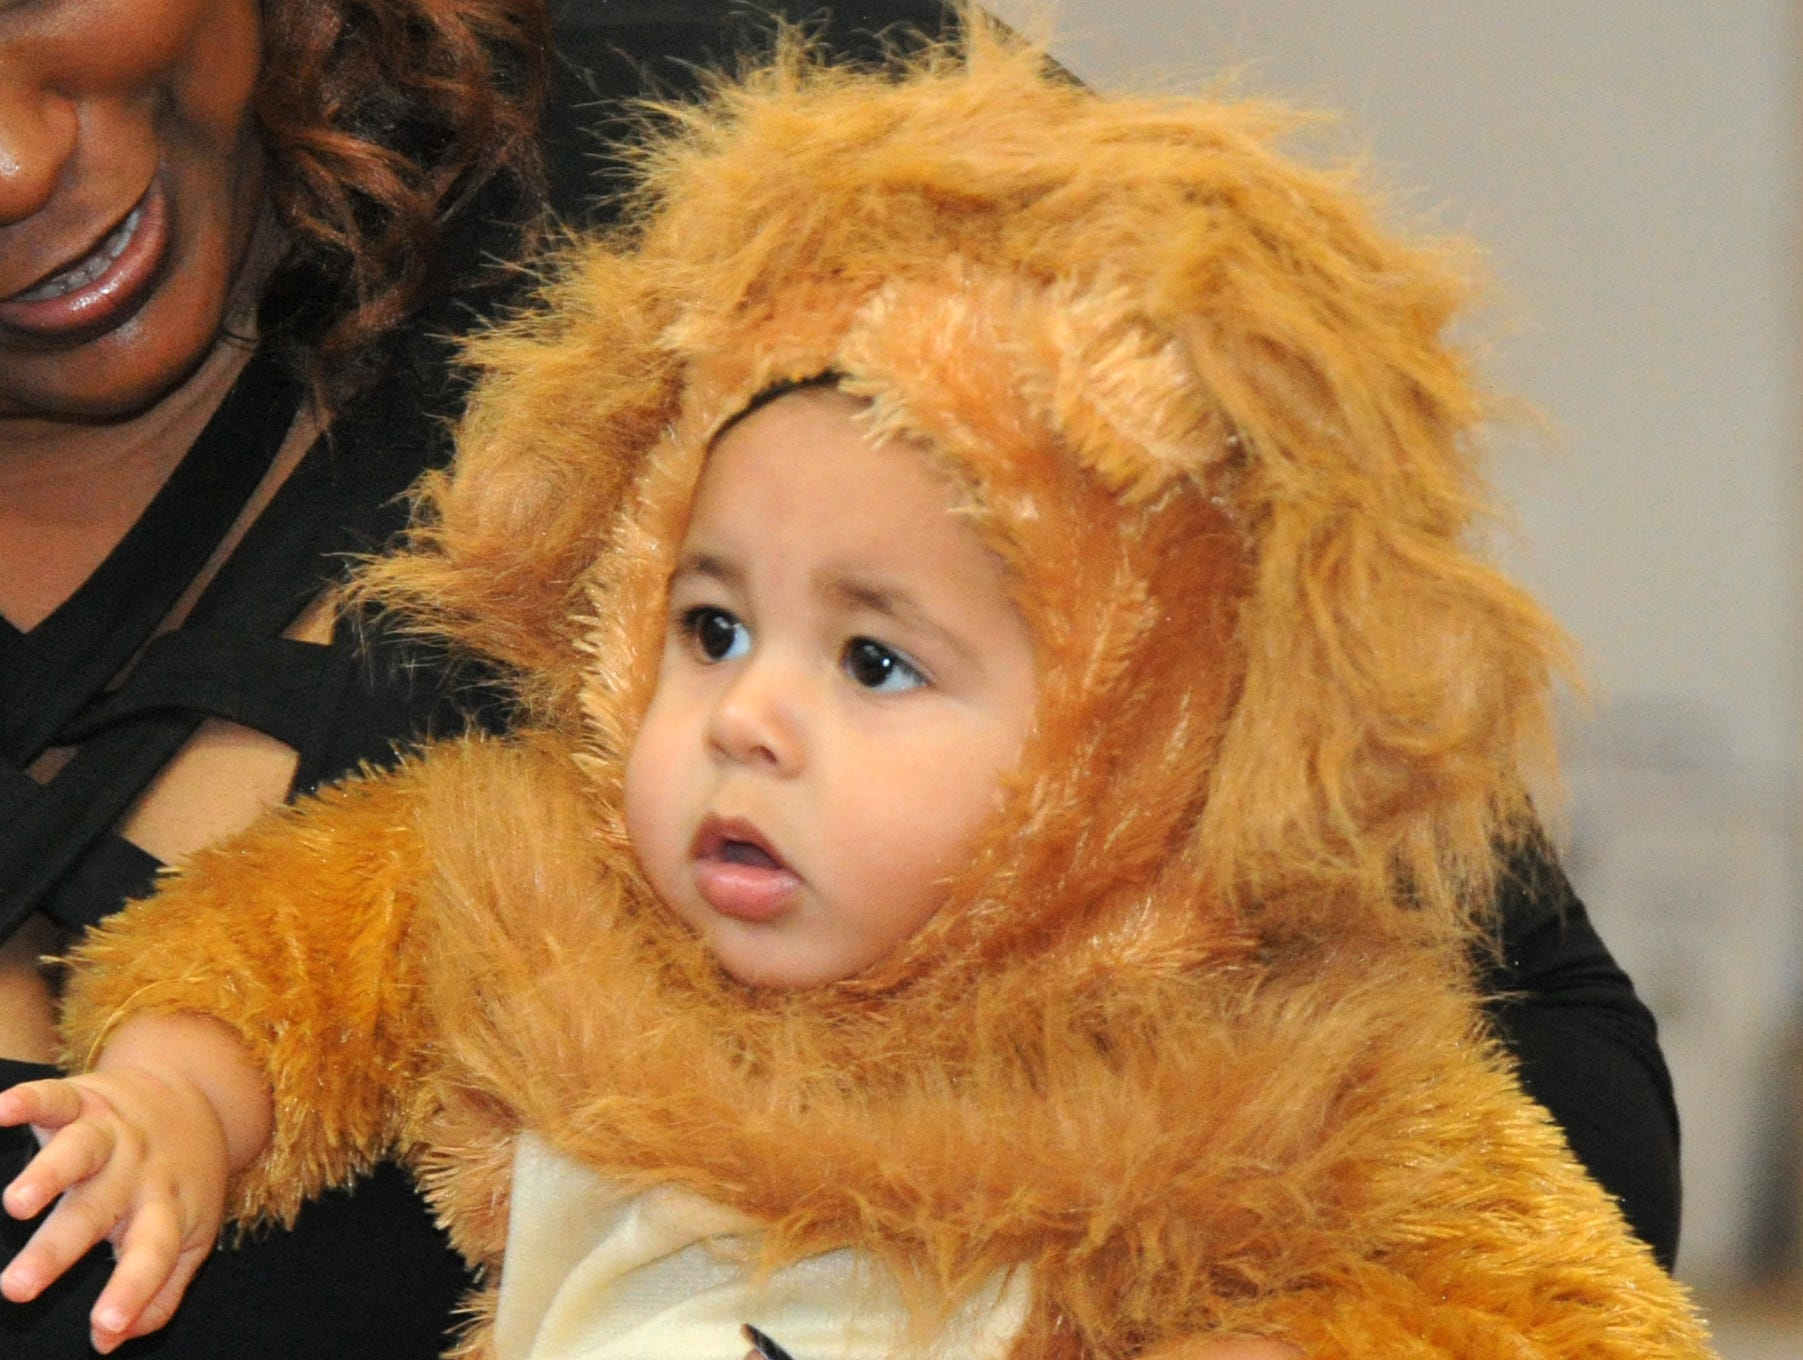 8-month-old, Jordan Reyes was dressed as a lion, Wednesday afternoon, during the Martin Luther King Center's Halloween costume contest.